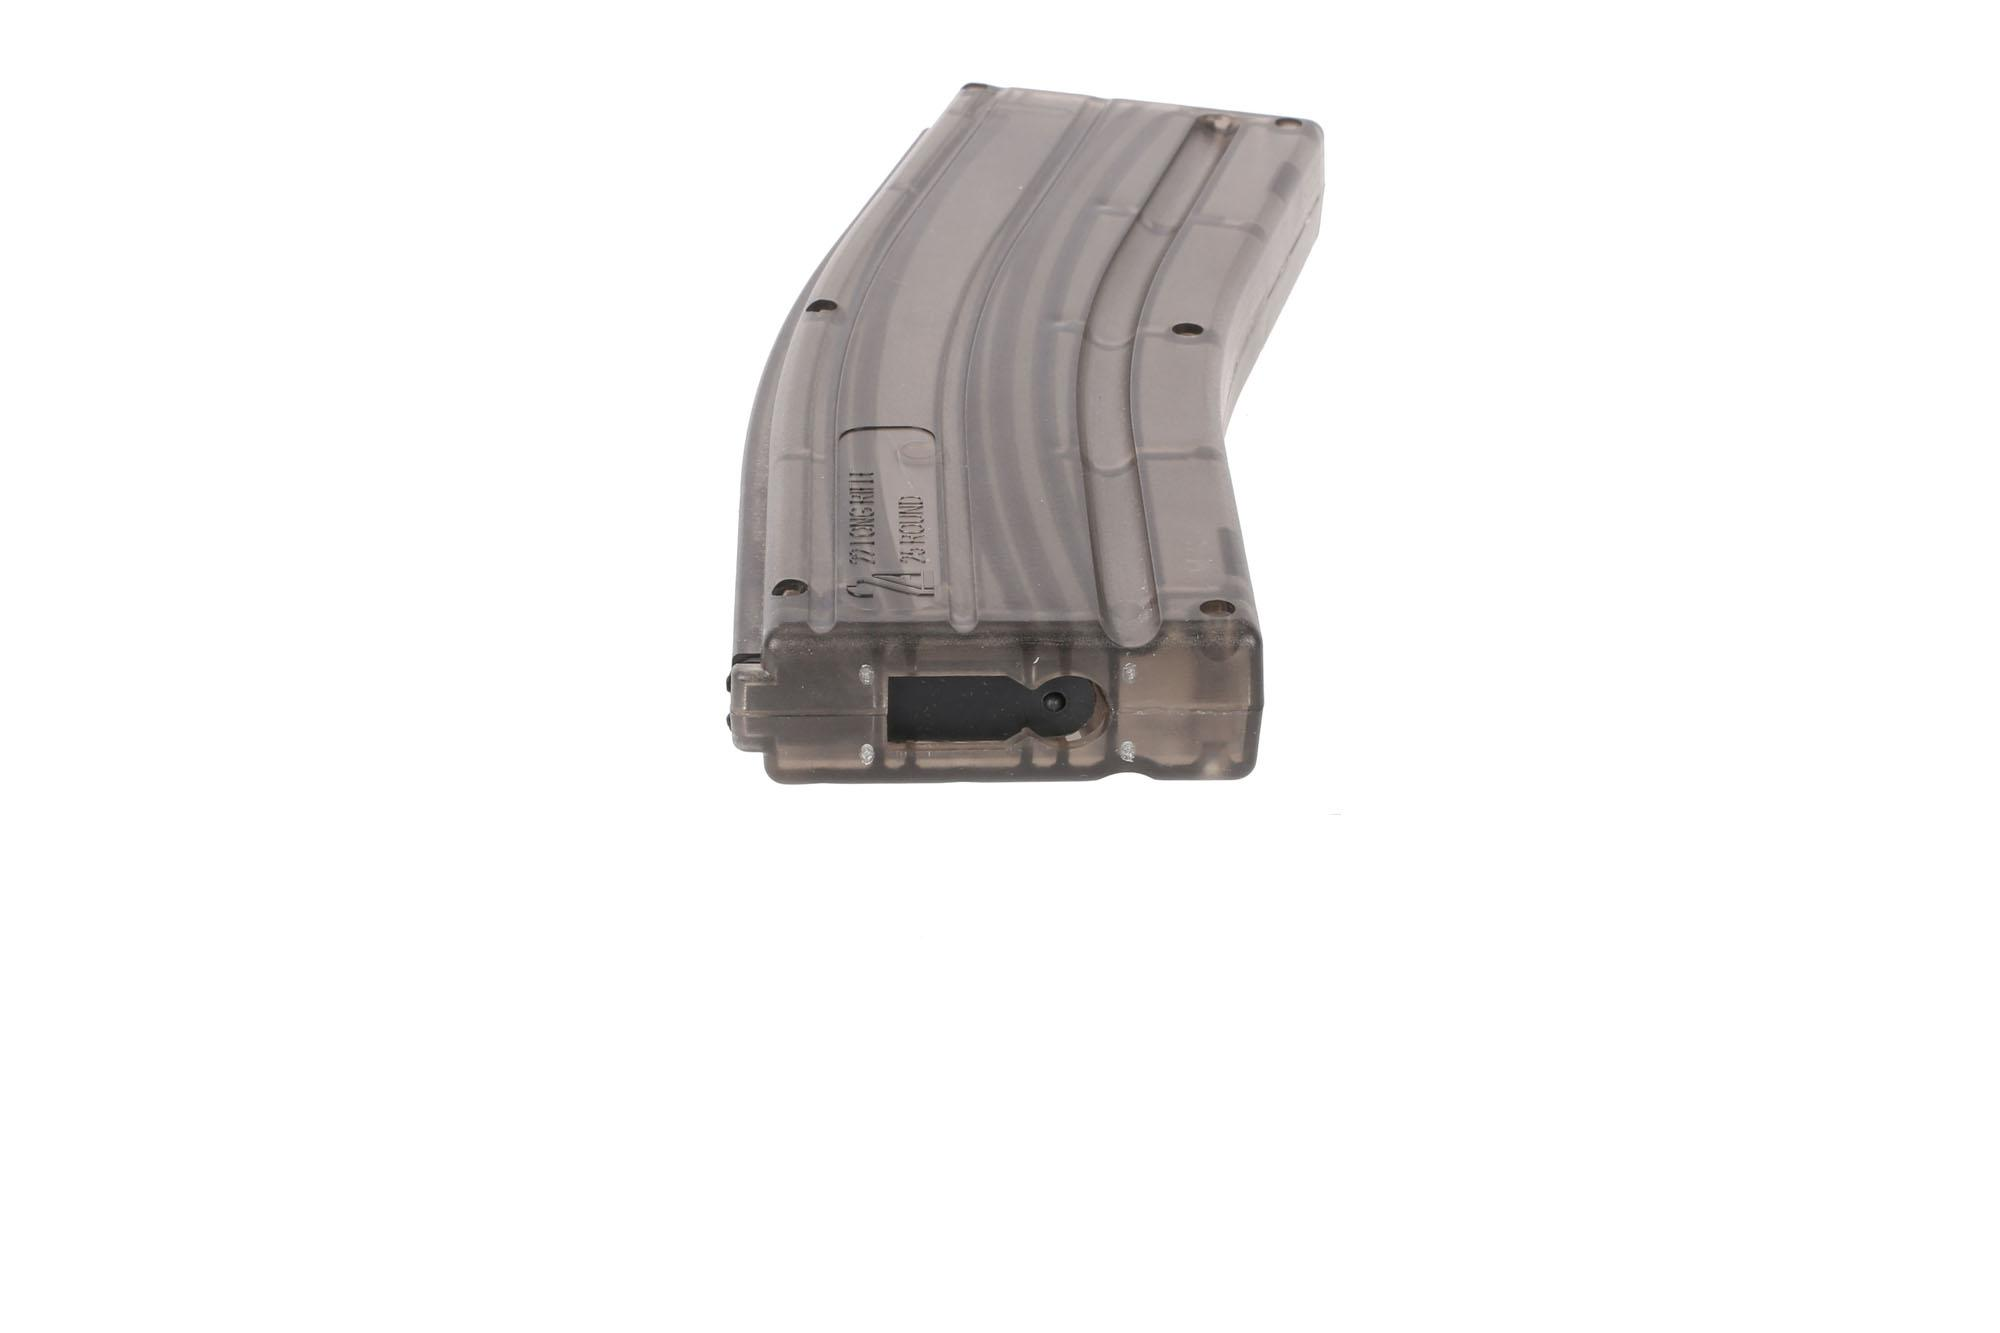 2A Armament AR 22LR 25-Round Magazine - Steel Feed Lip - Translucent Smoke